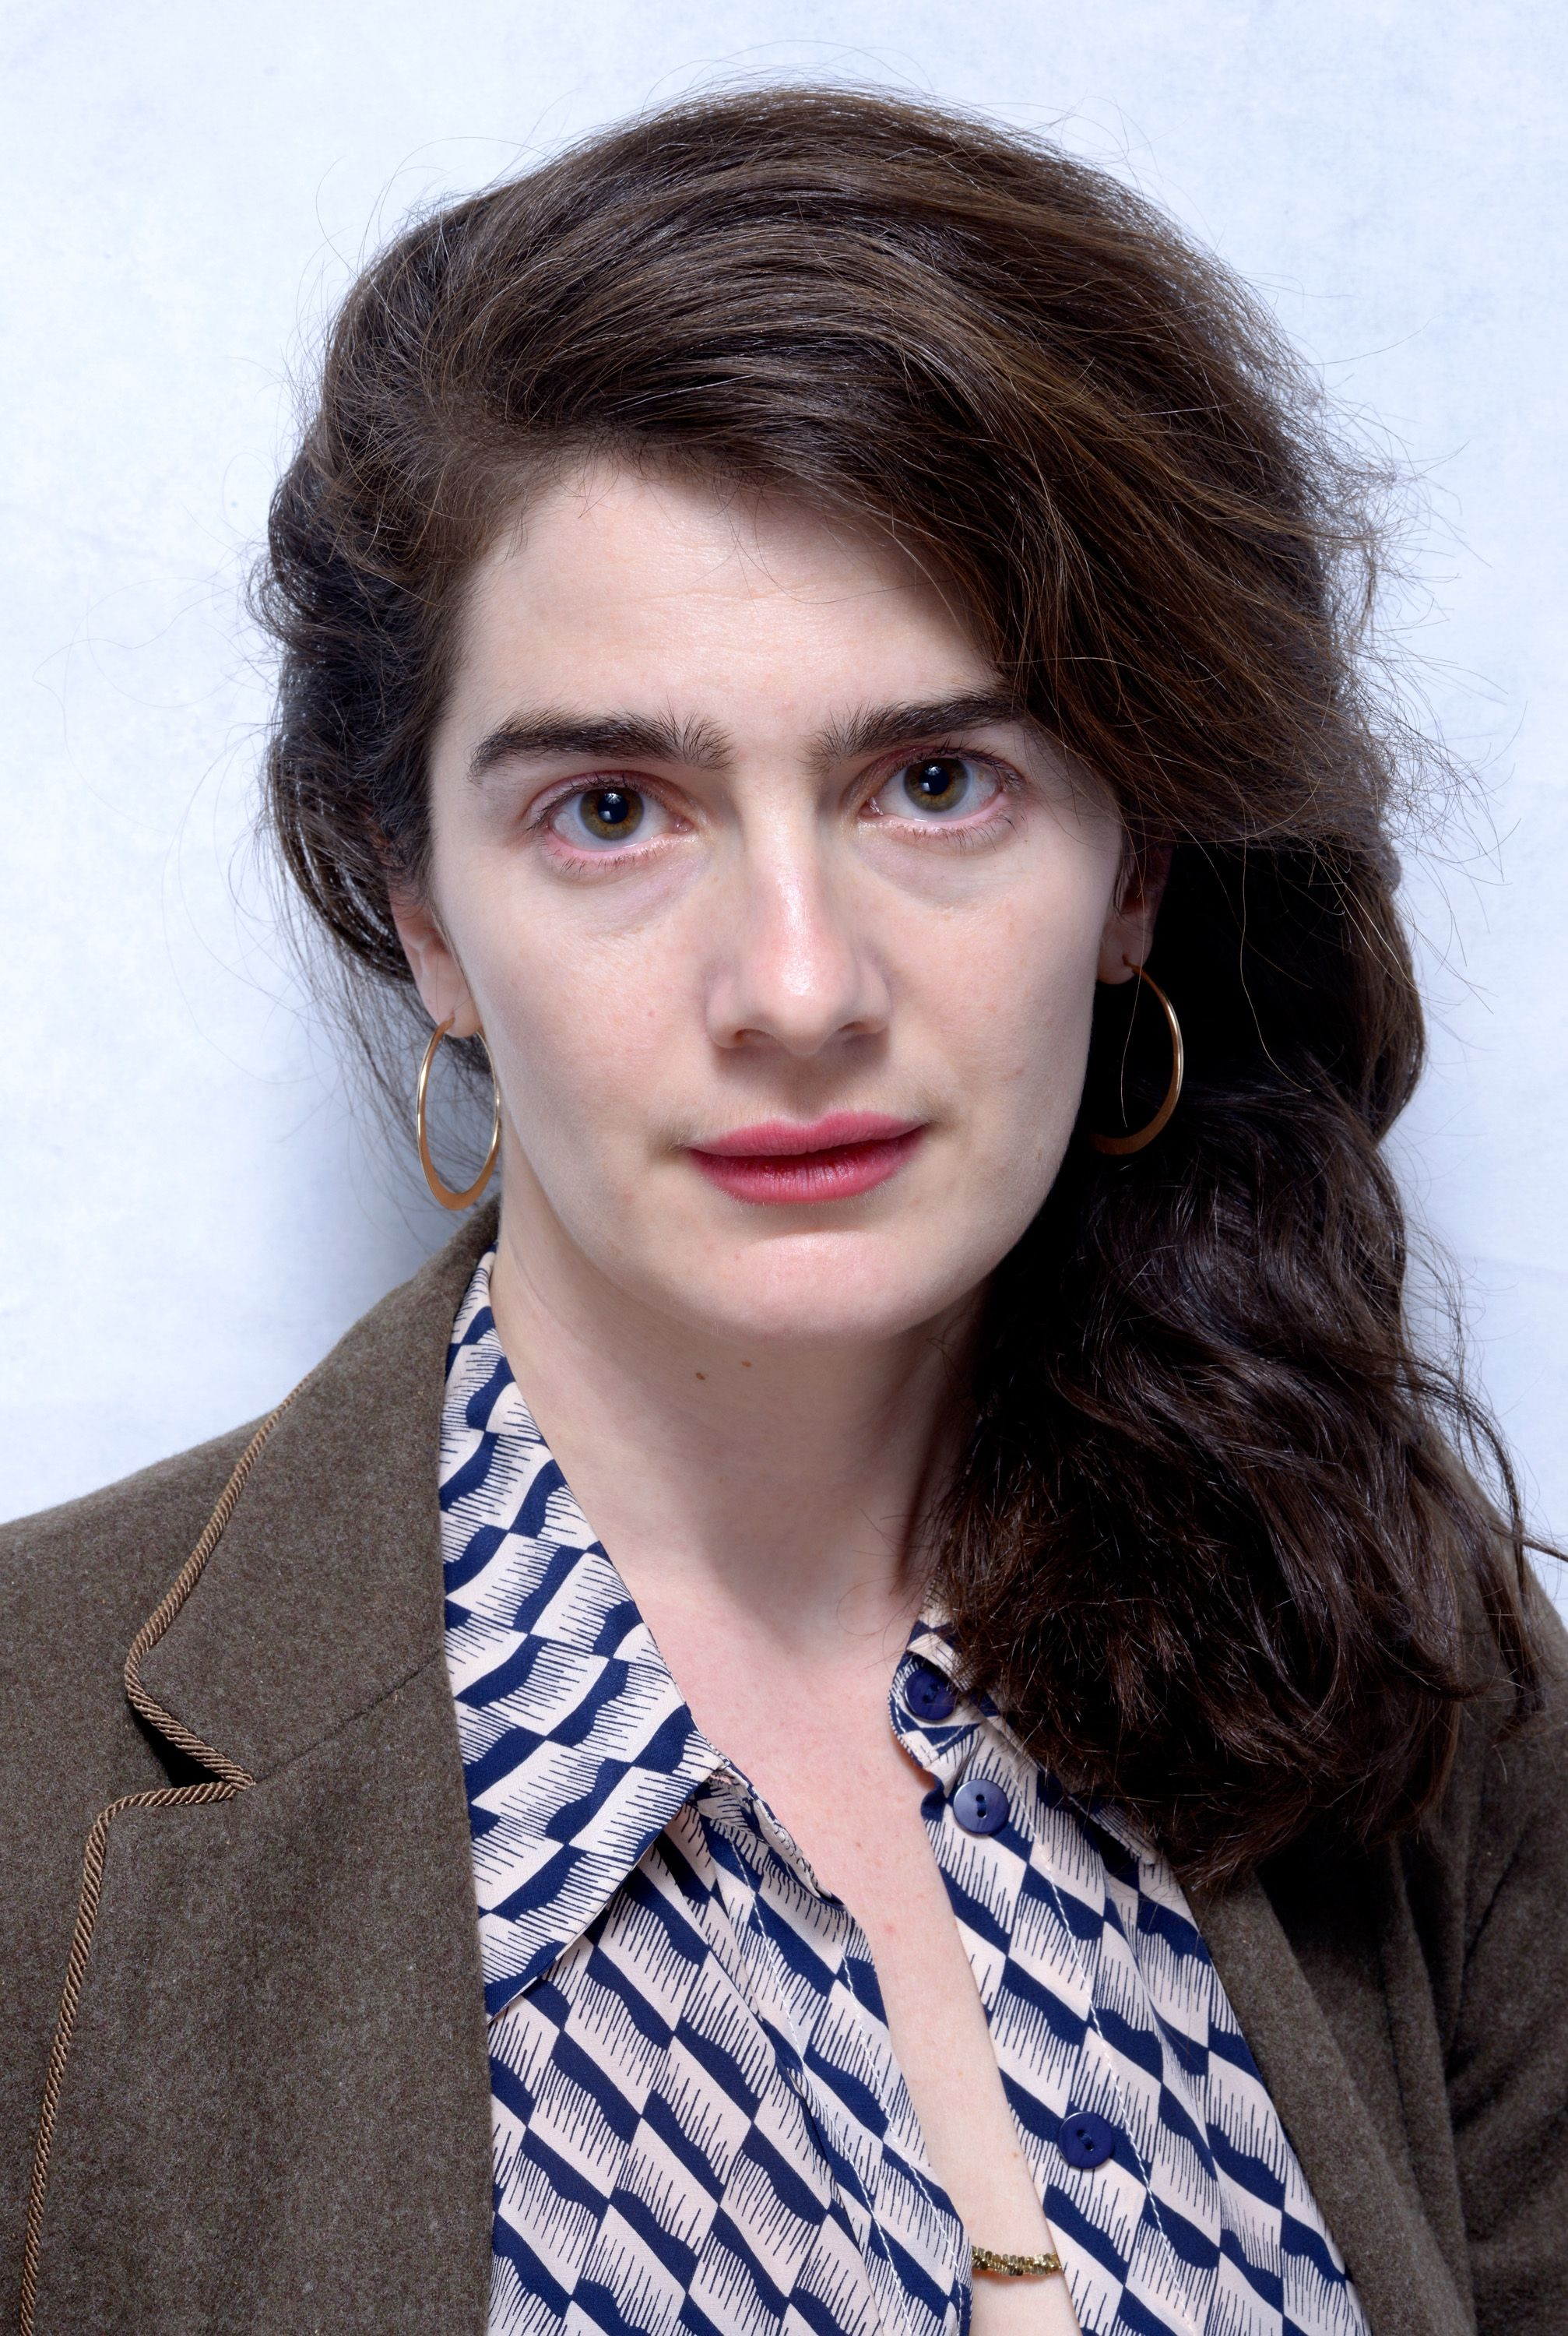 Images Gaby Hoffmann naked (39 foto and video), Pussy, Fappening, Feet, butt 2006